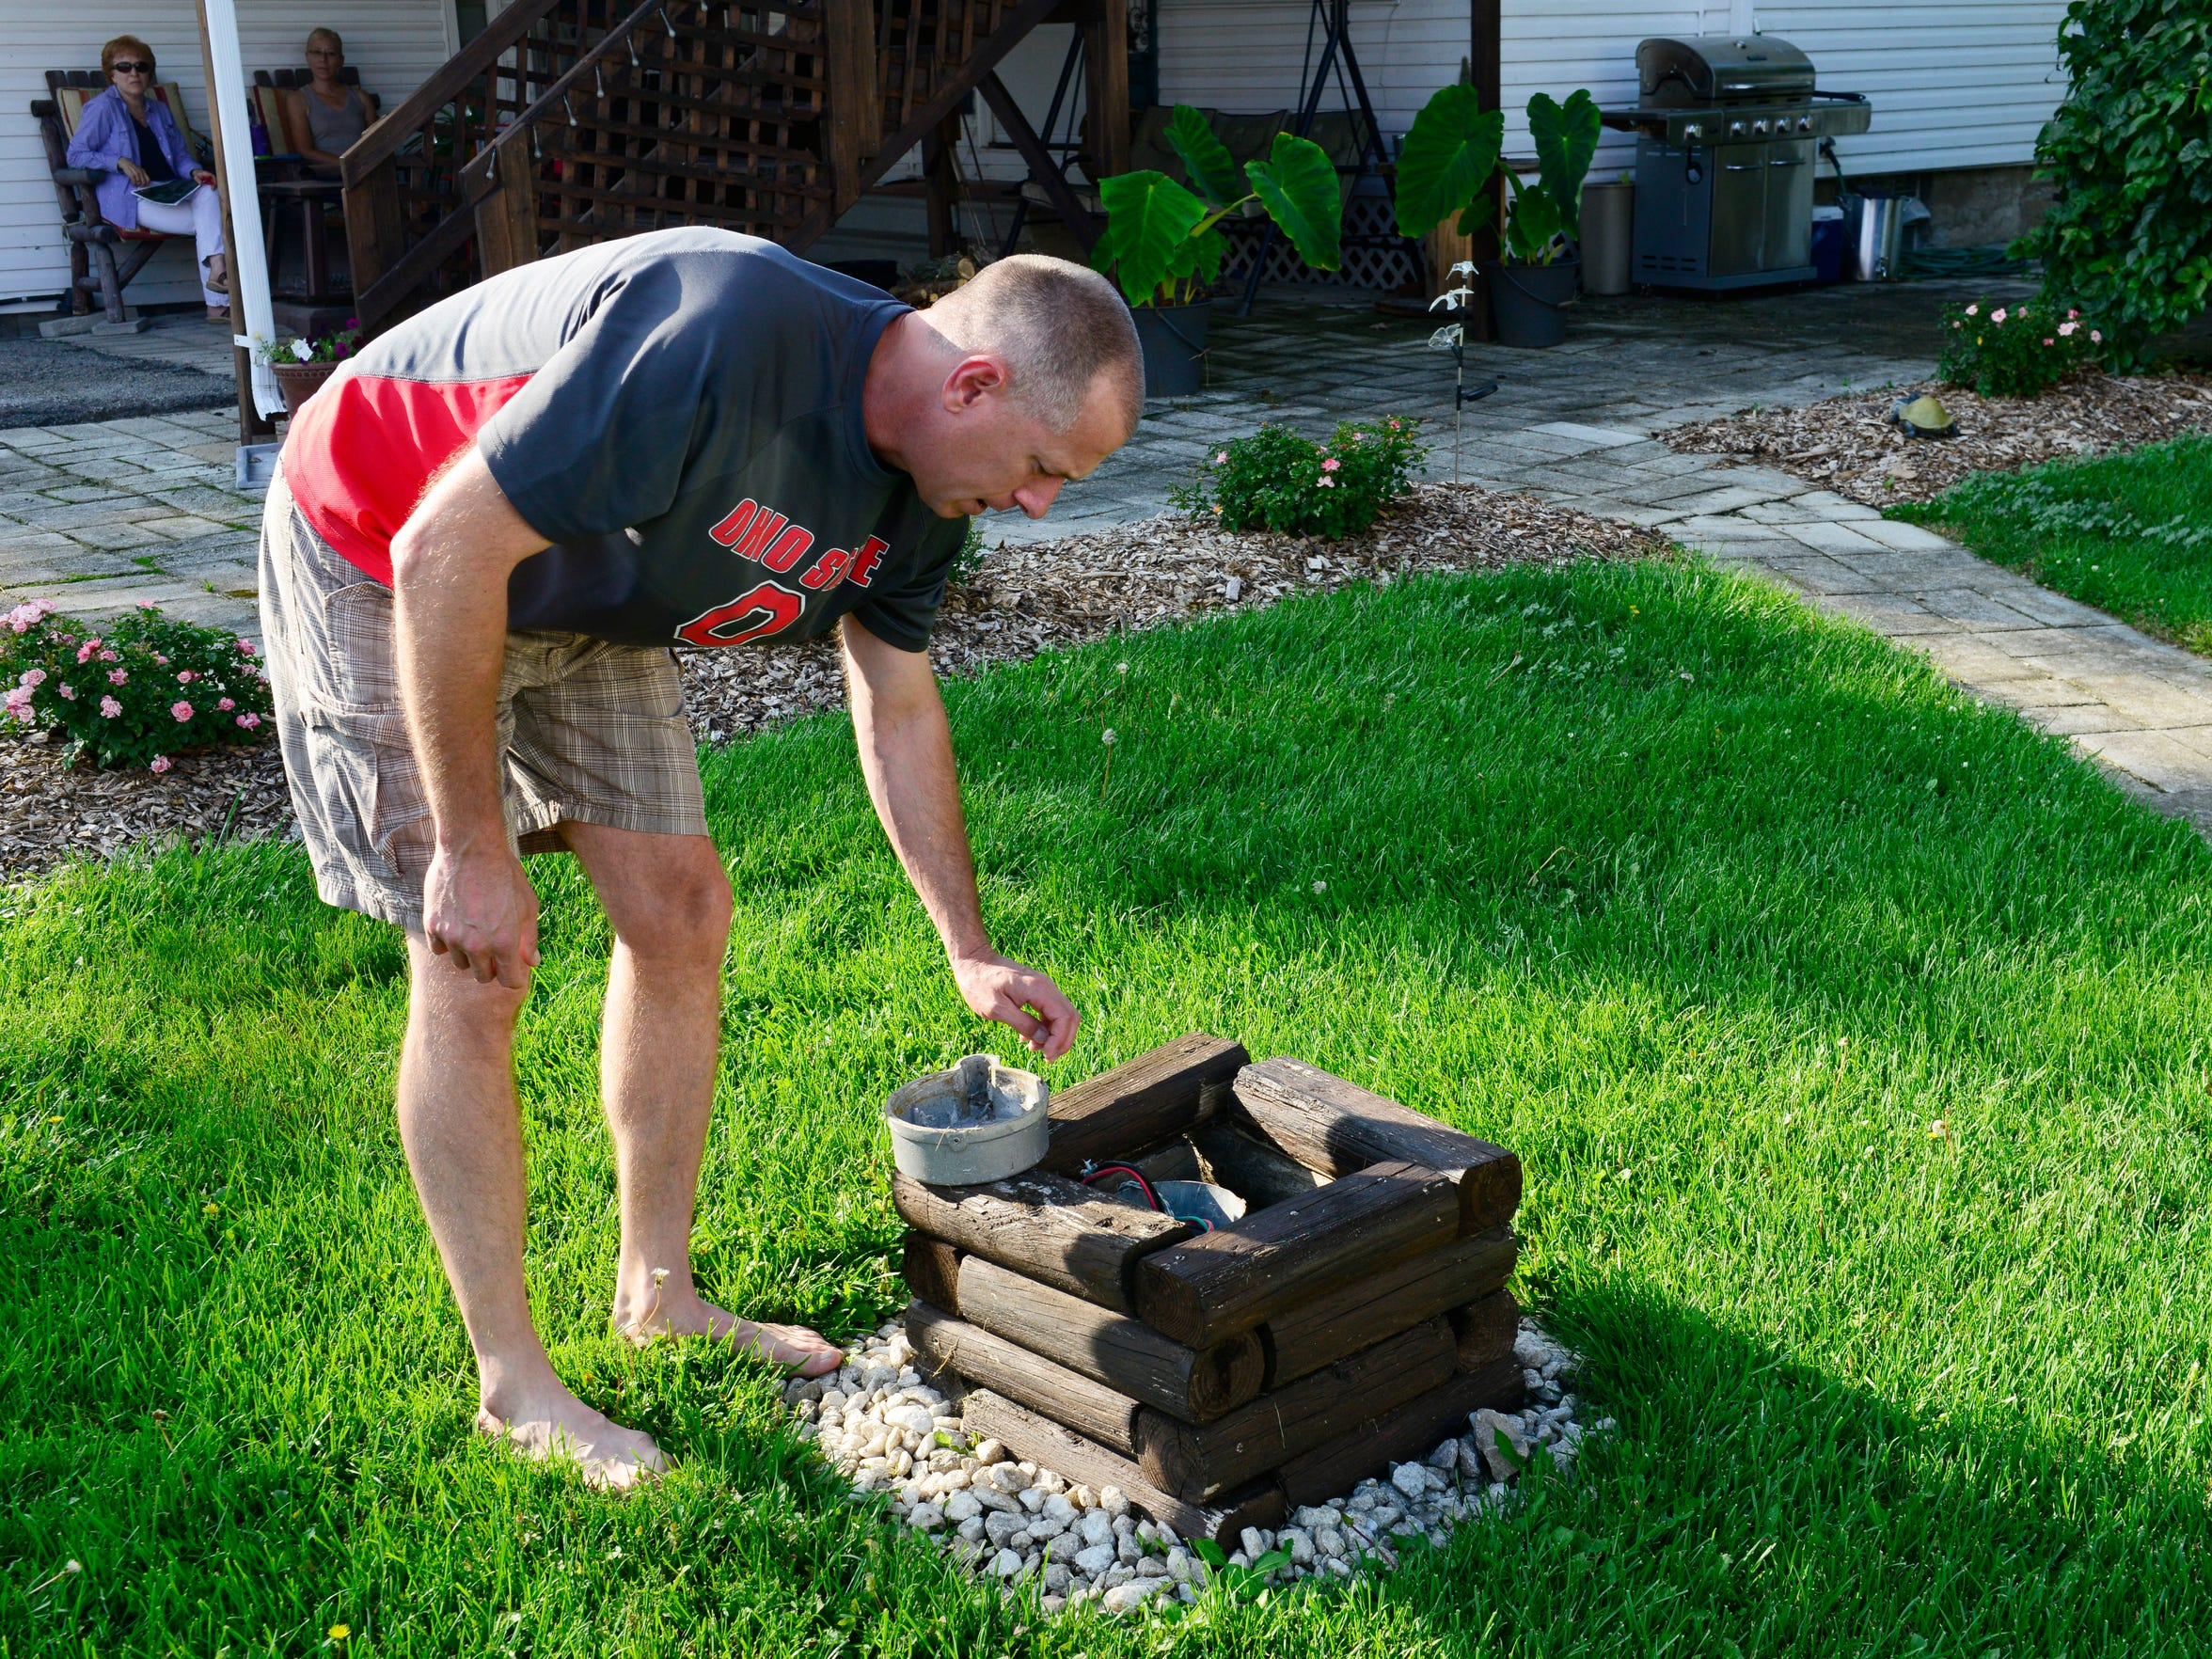 Rich Herrig draws water from a well in his backyard in Benton Township. He does not drink the water, saying he his concerned over contaminants from the residual sludge being dumped at the nearby Rocky Ridge Development LLC quarry.